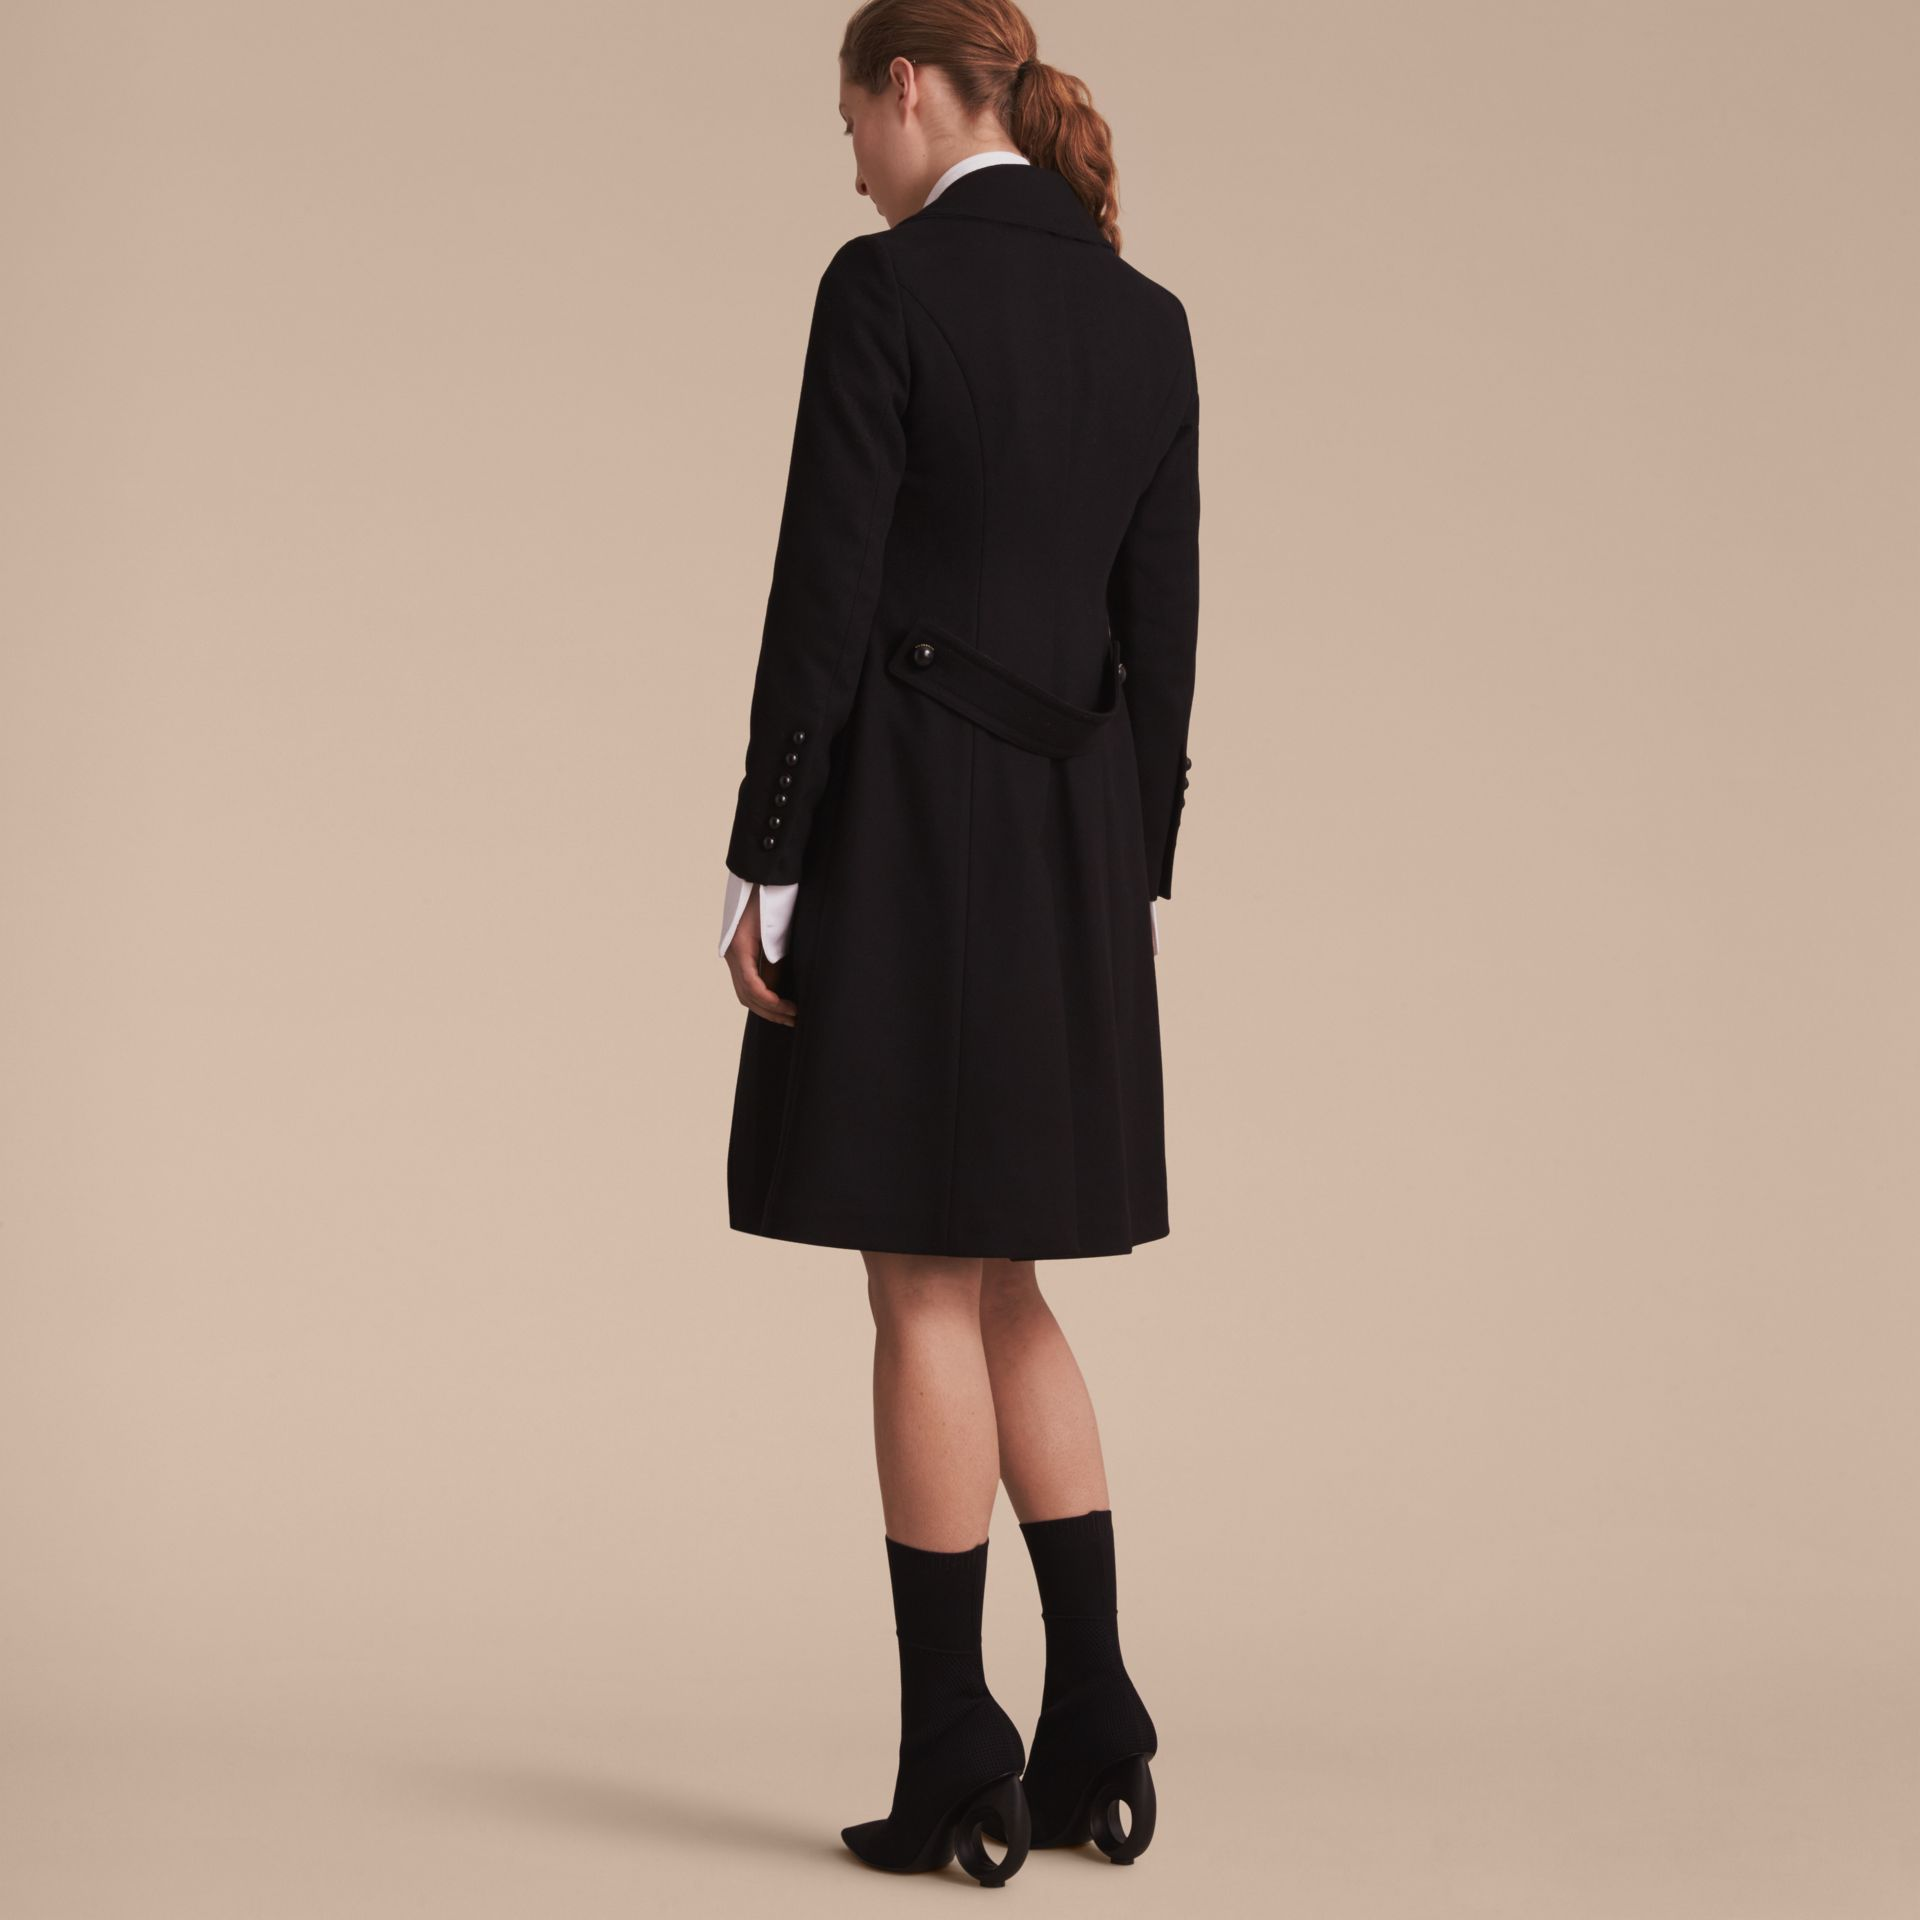 Wool Blend Double-breasted Coat in Black - Women | Burberry - gallery image 3